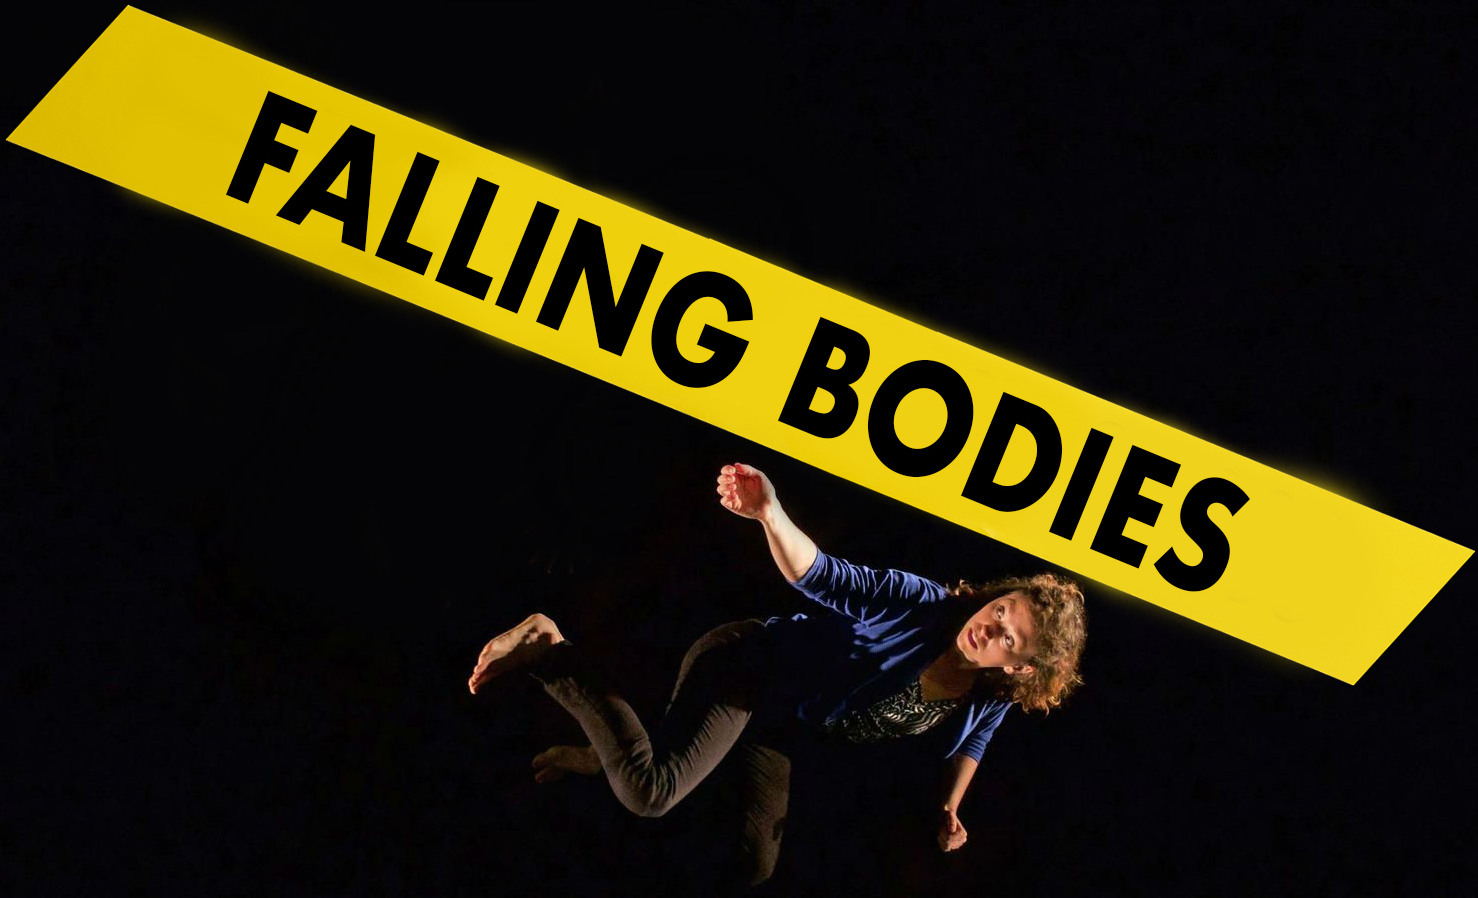 Falling Bodies - June 15th, 8:30pm-10:30pmWhen a seasoned homicide detective's daughter falls from a college dorm room window, the campus police rule her death a suicide. Tormented by grief and rage, the girl's father, convinced her death is actually a murder being covered up by the college, determines to get to the truth no matter what.